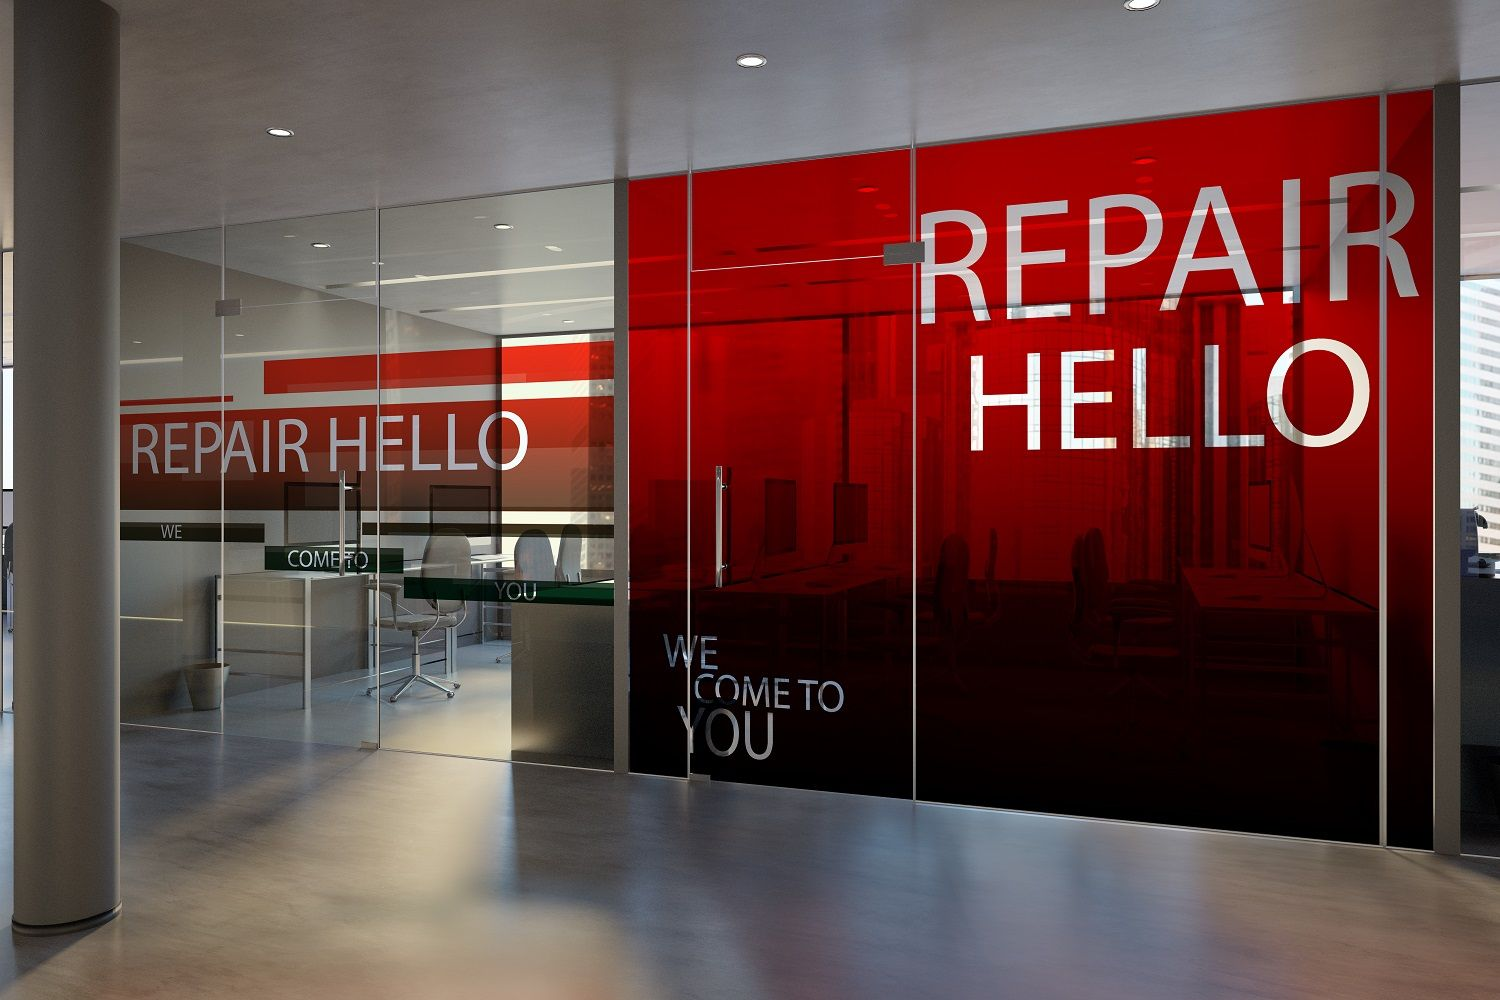 Repair Hello Iphone Screen Hollywood We Come To You In 2020 Iphone Repair Iphone Screen Repair Repair